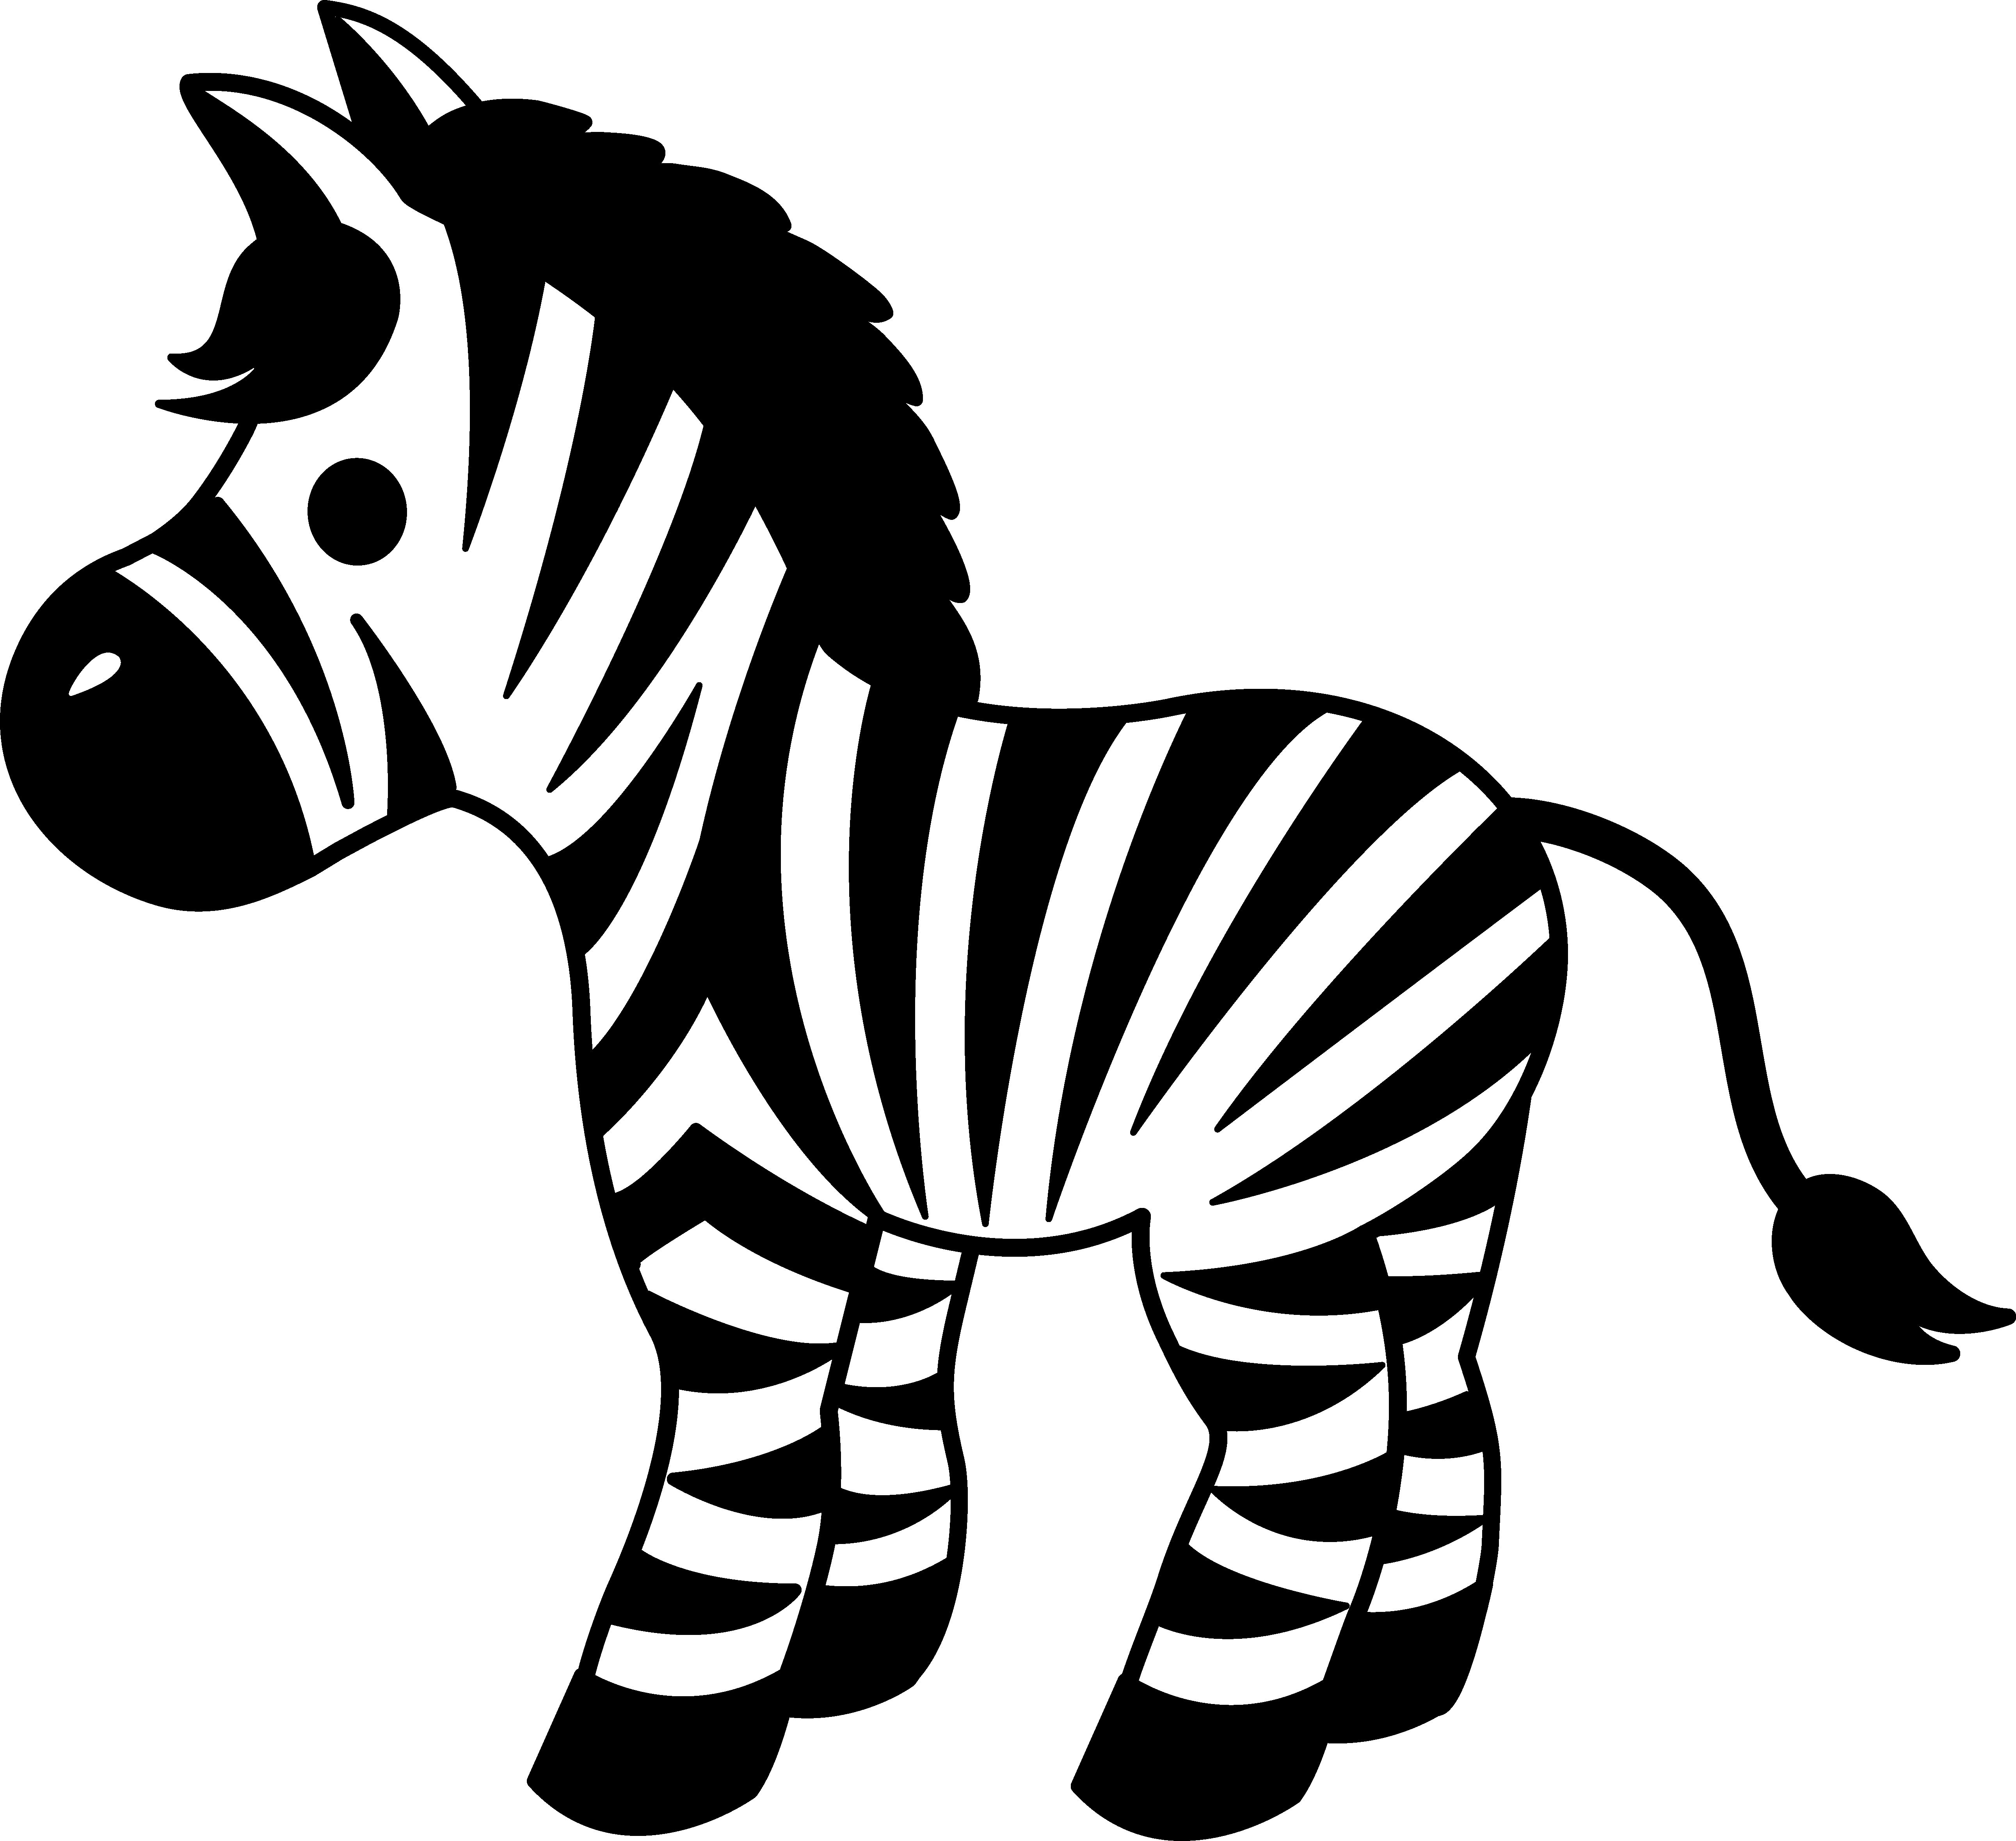 Basketball block clipart picture freeuse stock Zebra Basketball Cliparts Free collection | Download and share Zebra ... picture freeuse stock